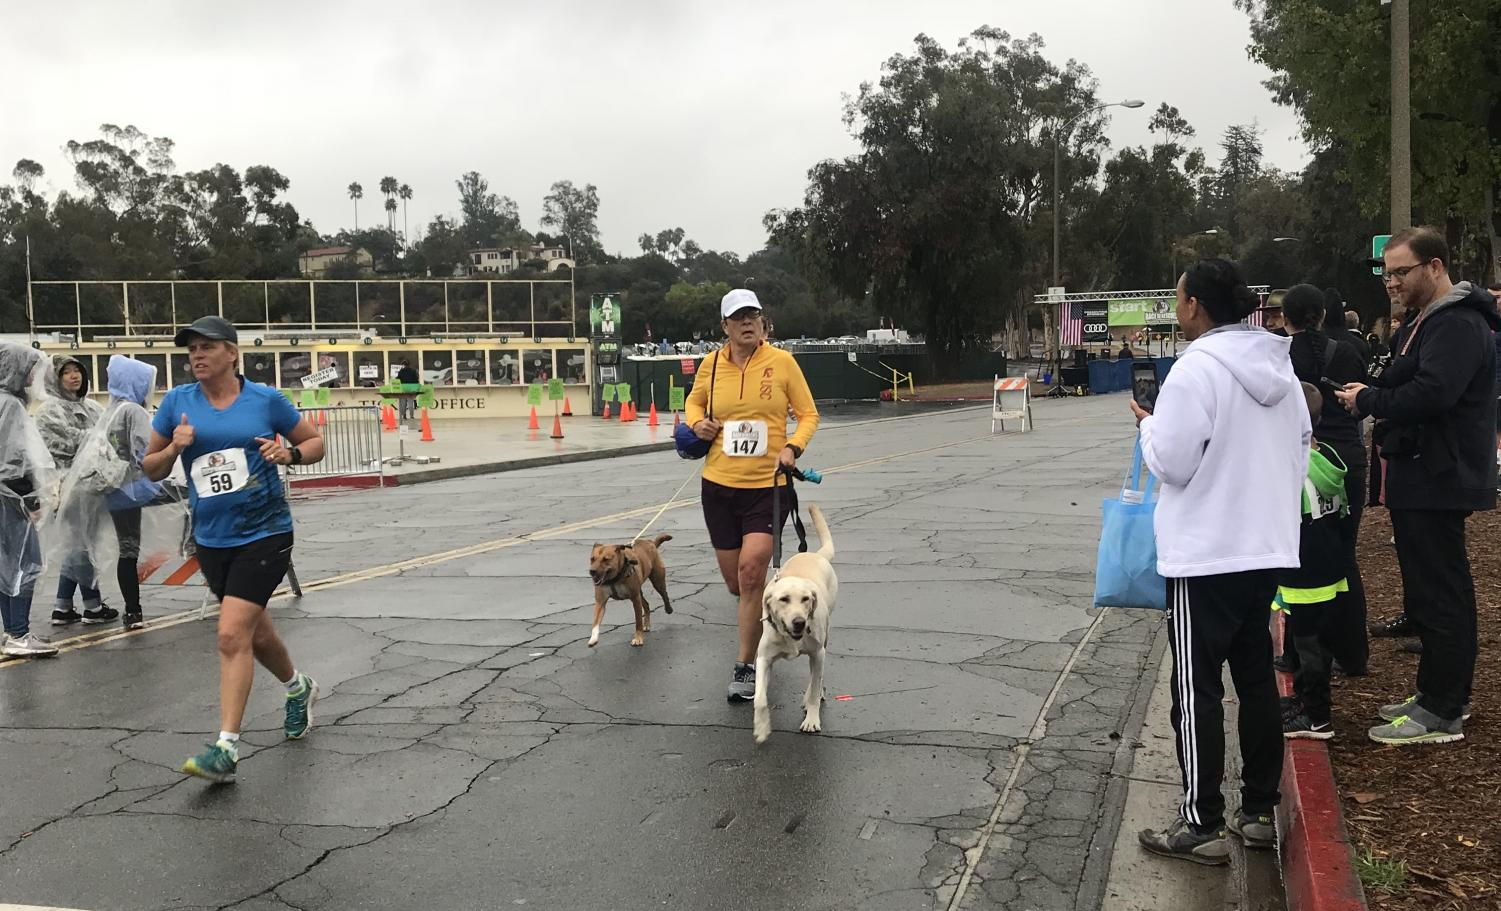 Runner Amy Parker finishing the race with her two dogs.